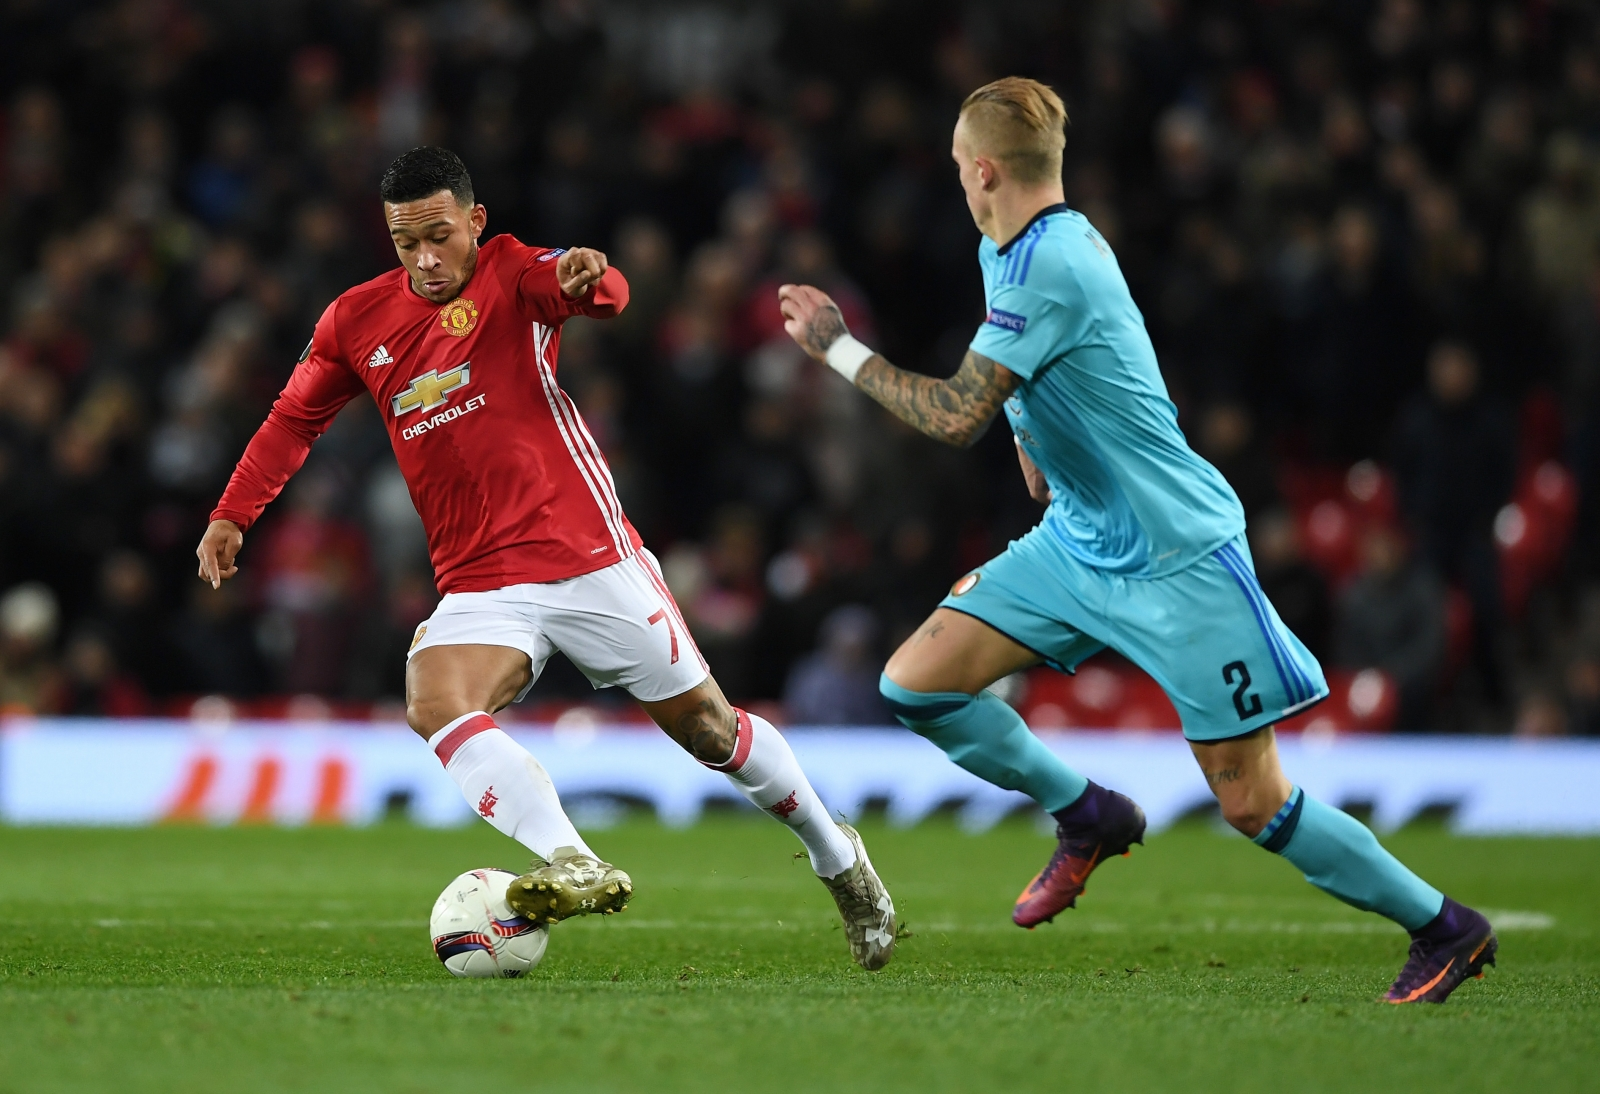 Memphis Depay